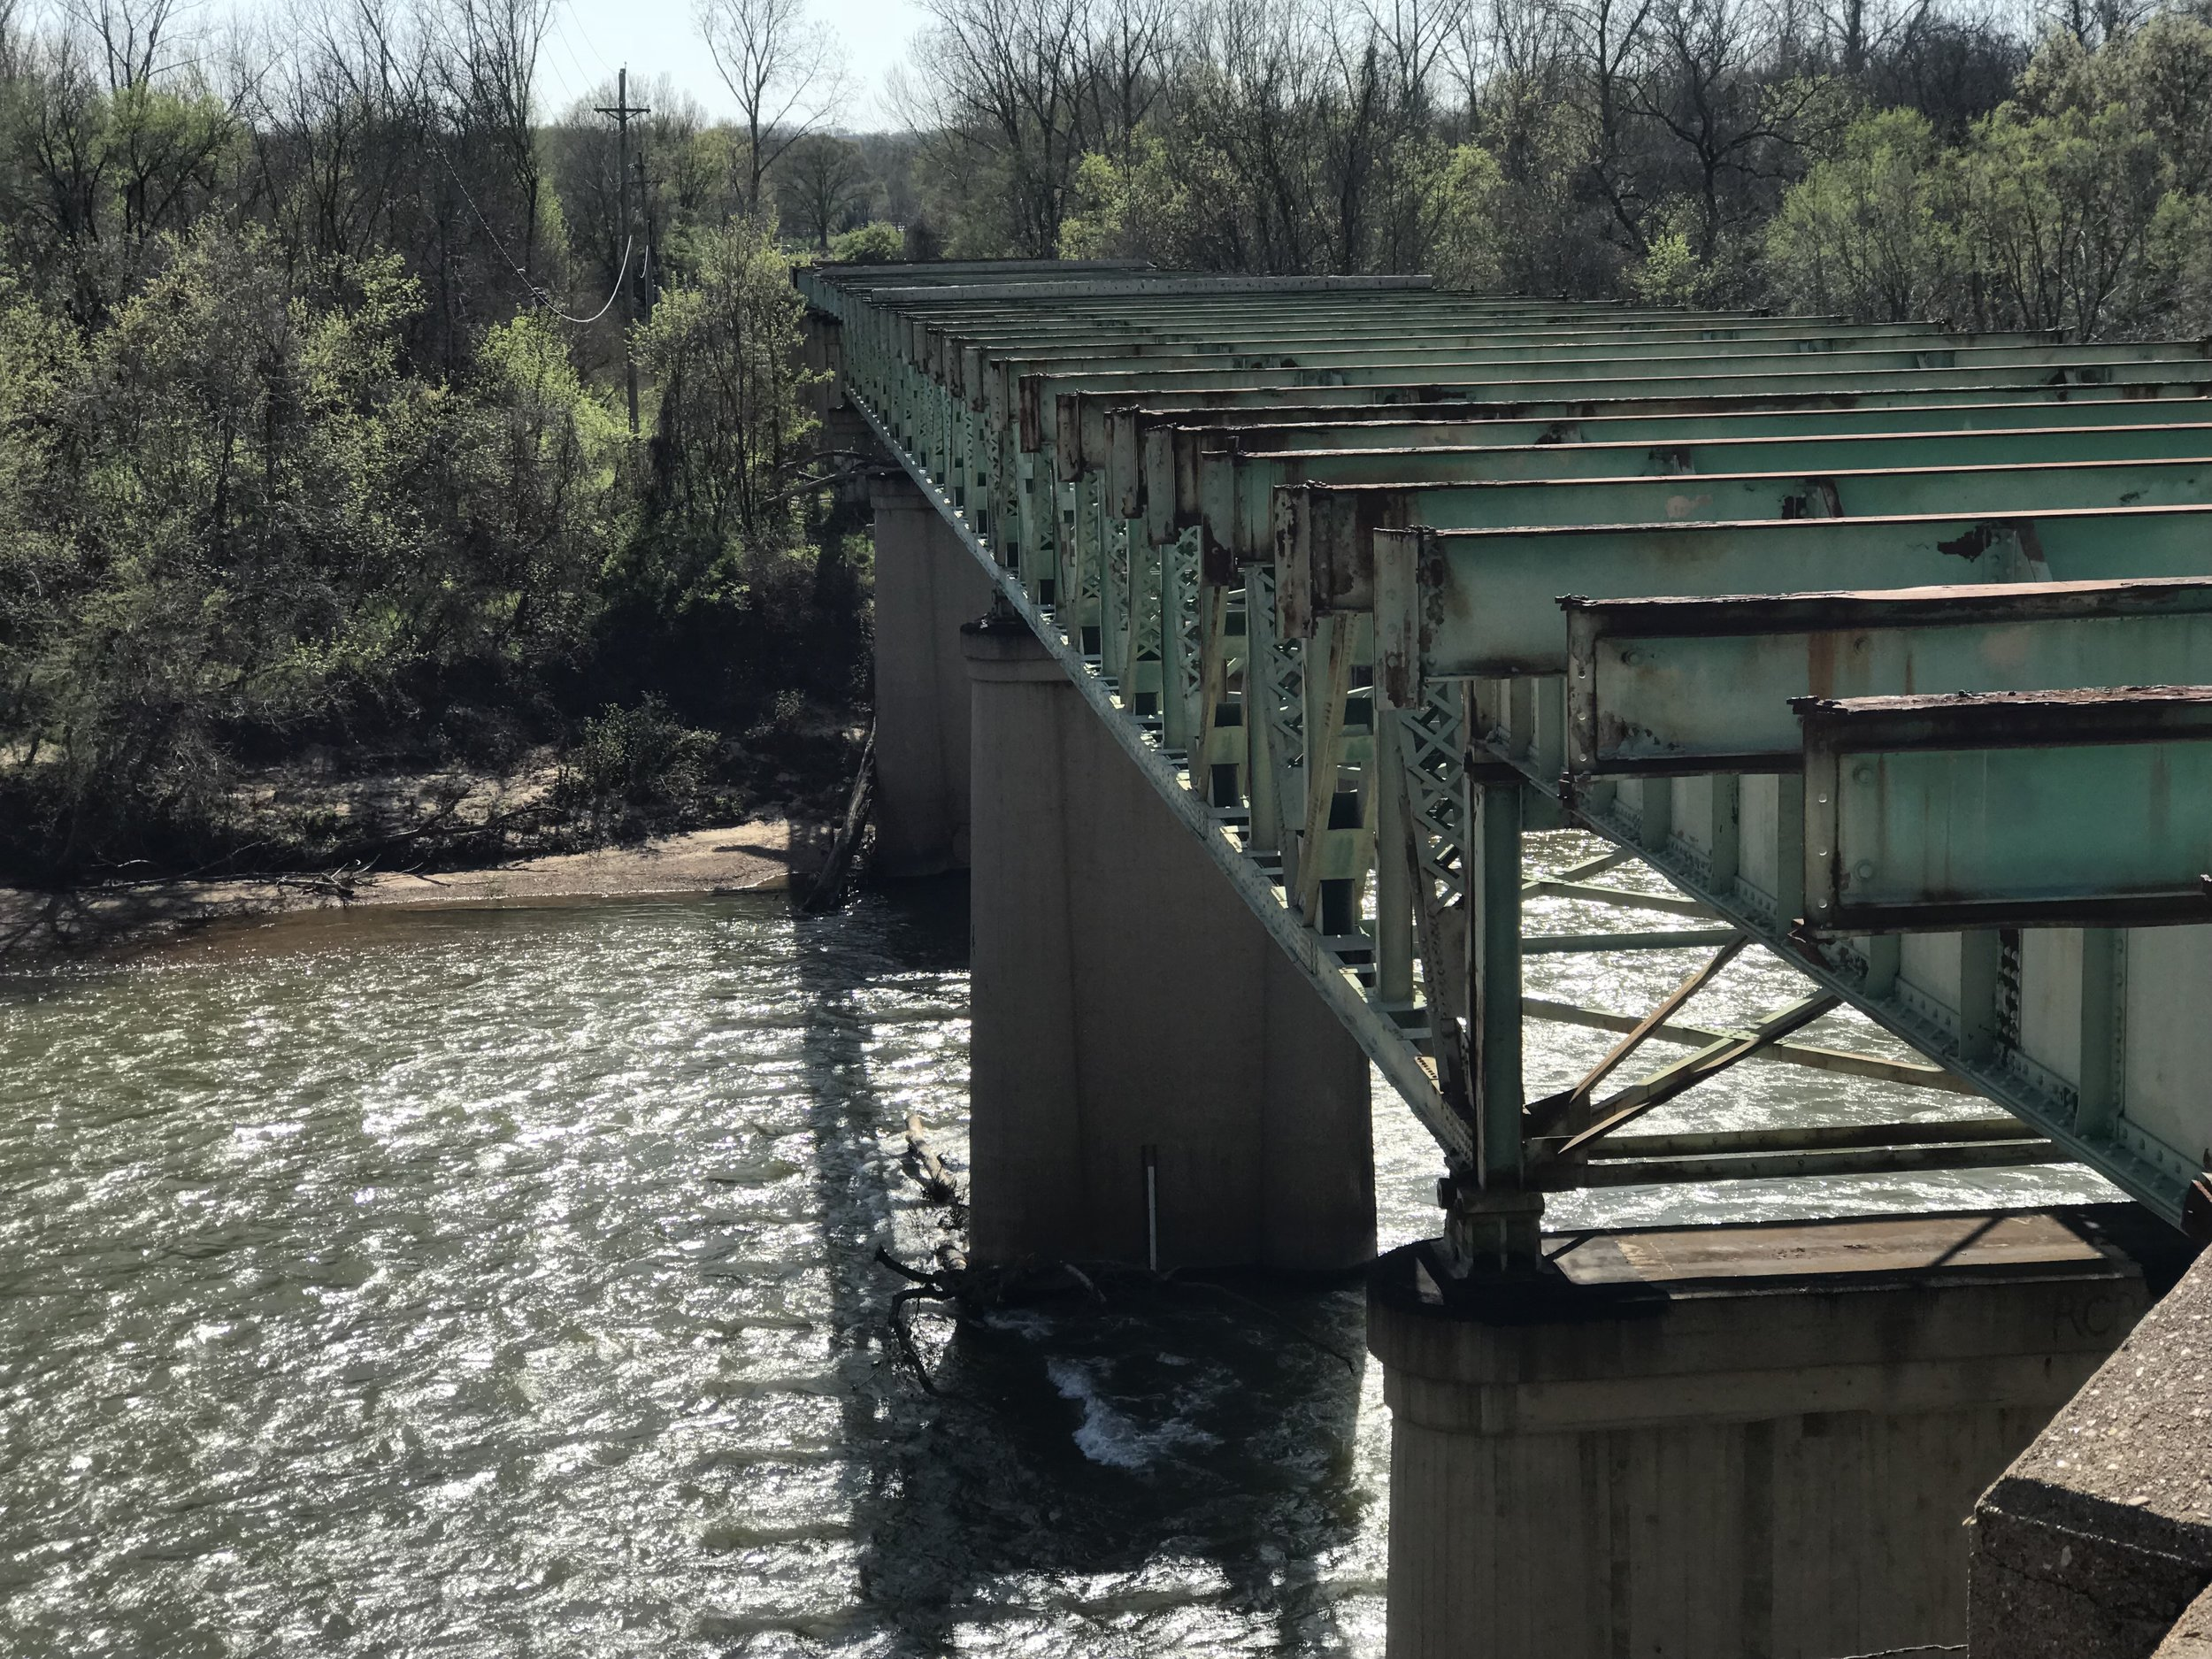 The Route 66 bridge over the Meramec River is a rusted skeleton. On the other end is where the town of Times Beach used to be.